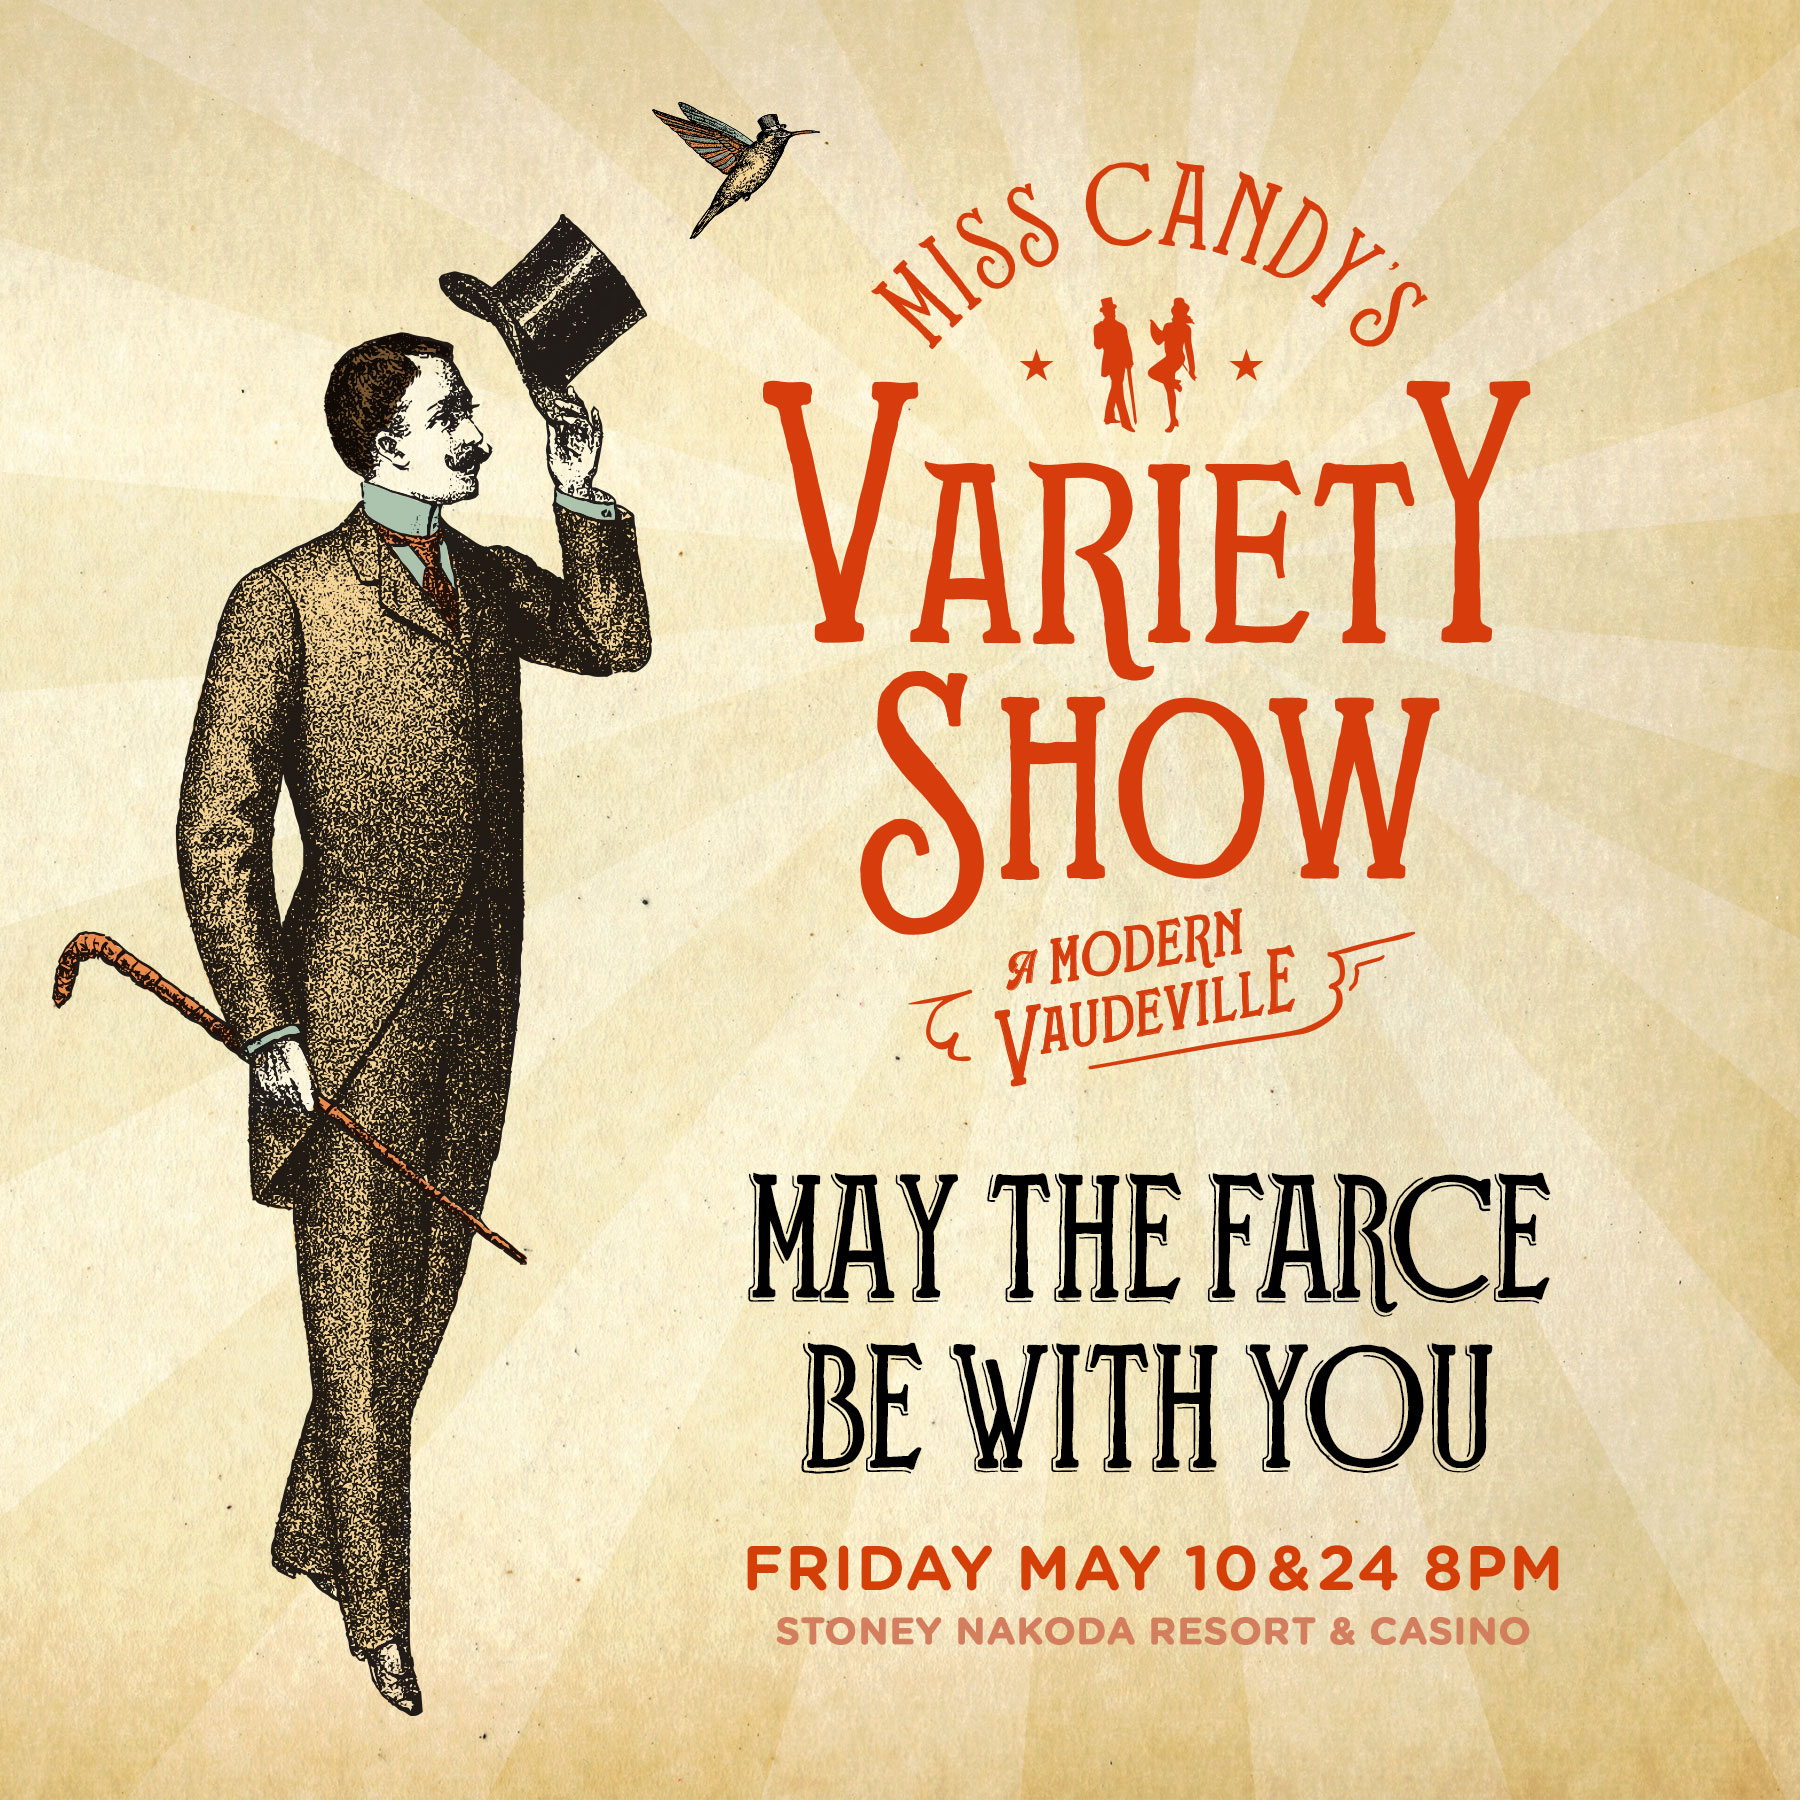 Miss Candy's Variety Show: May the Farce be With You